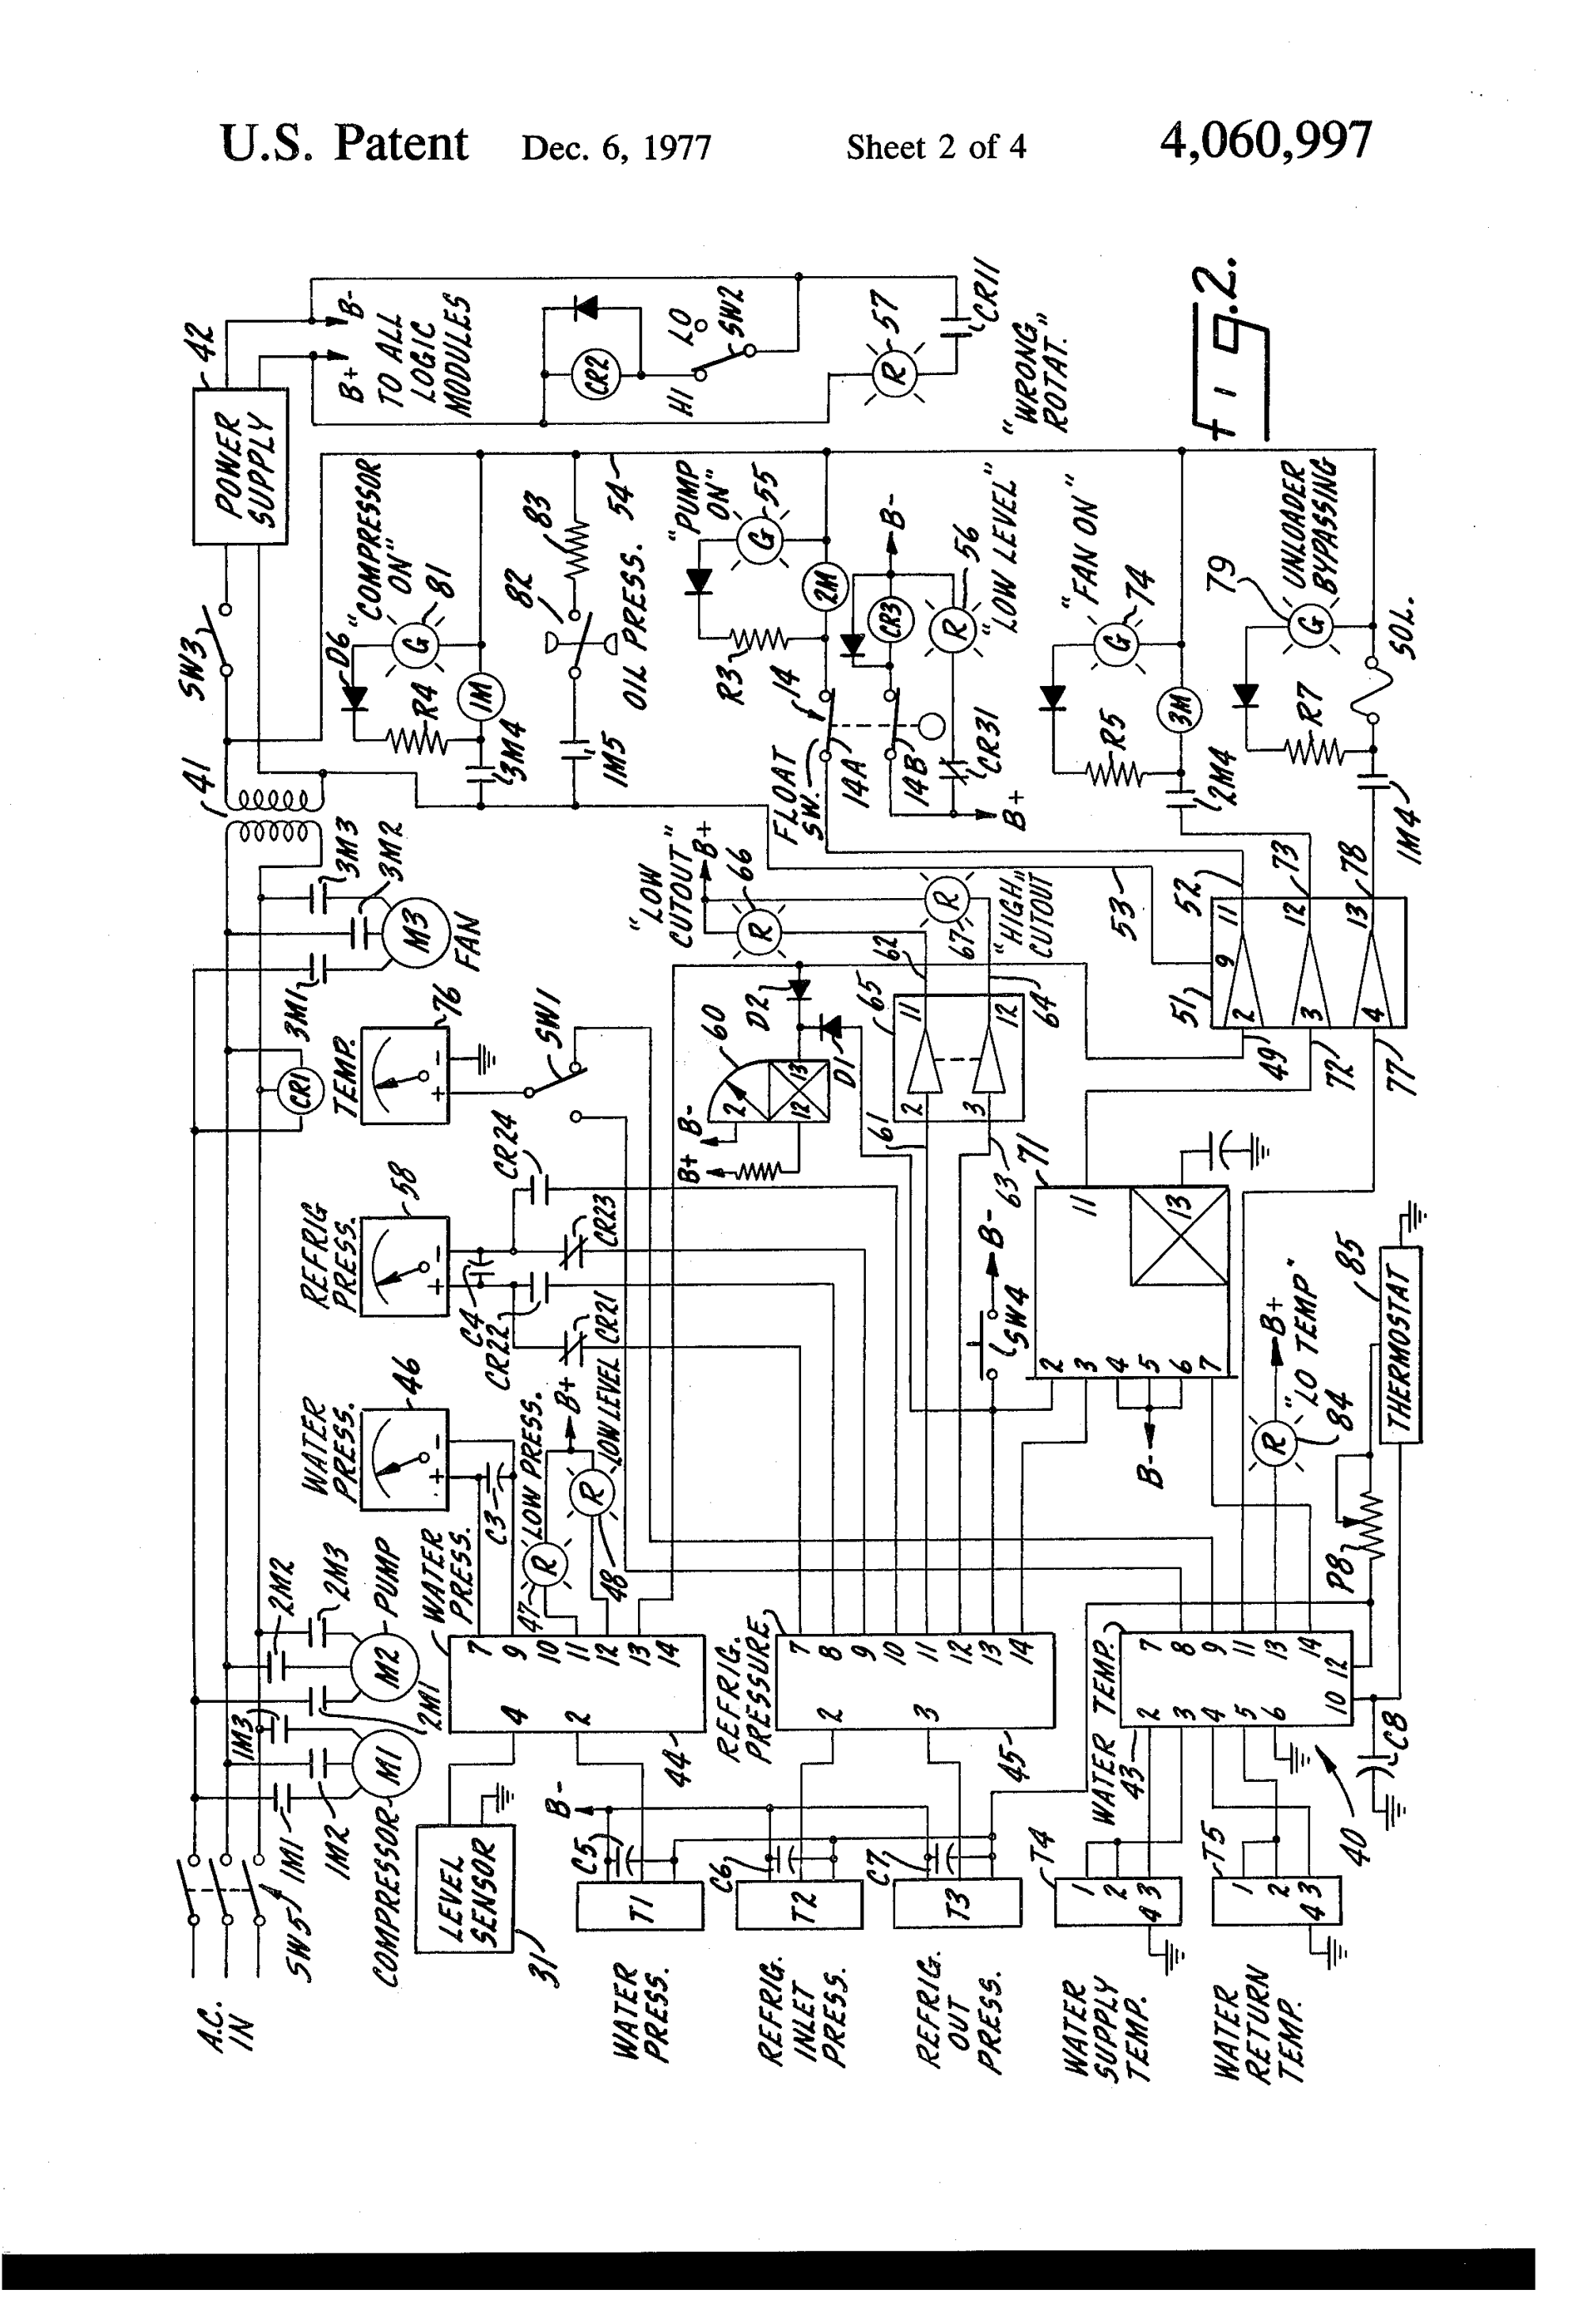 hight resolution of york chiller control diagram all about repair and wiring collections york chiller control diagram patent drawing